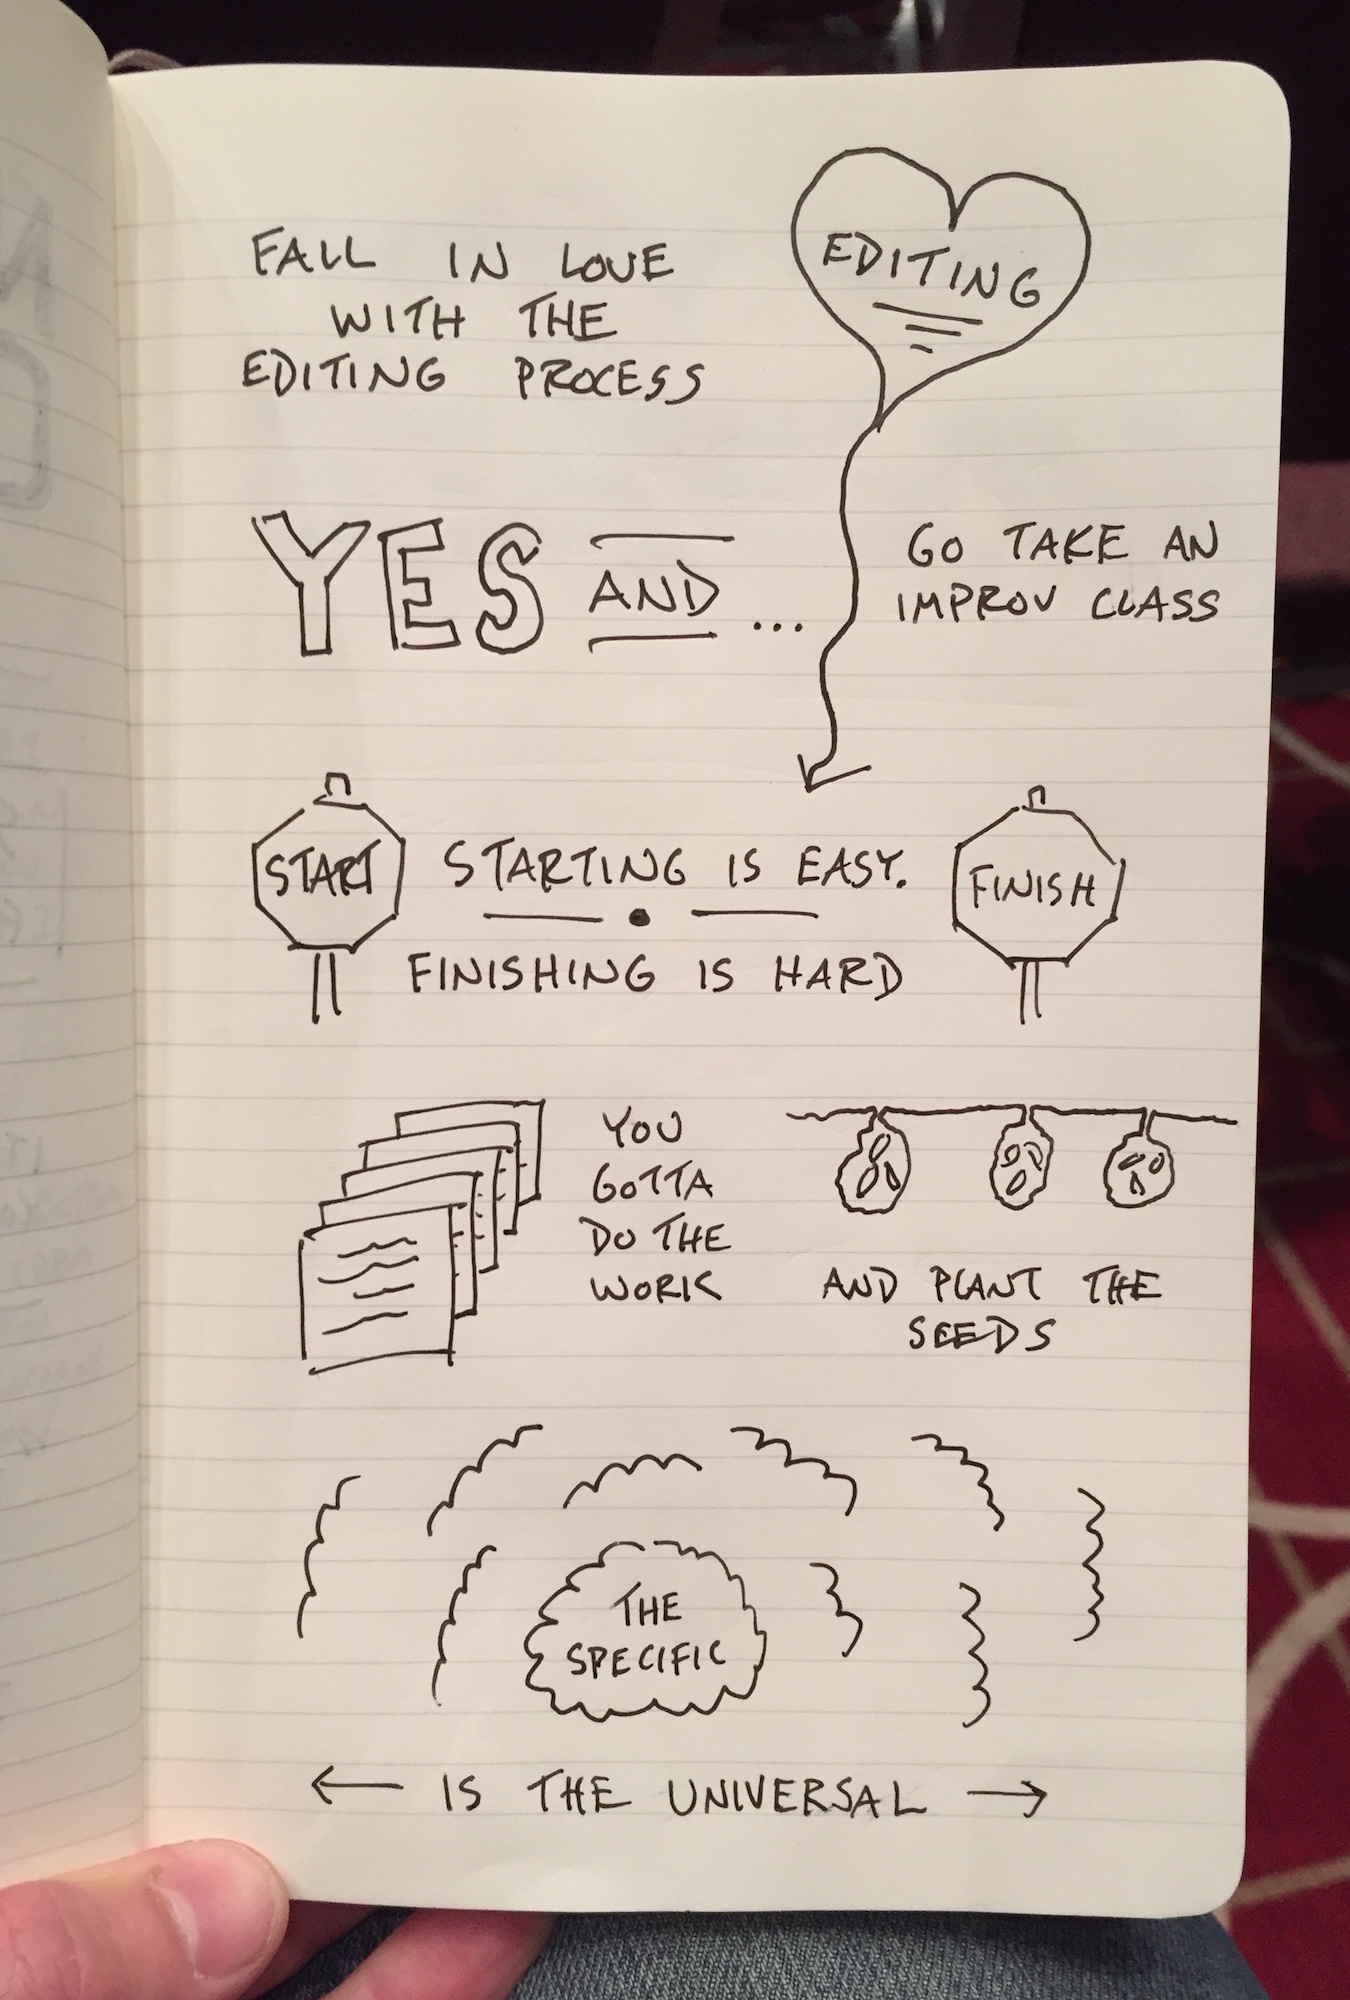 Finding Your Voice (2) - NerdCon: Stories Sketchnotes - Doug Neill